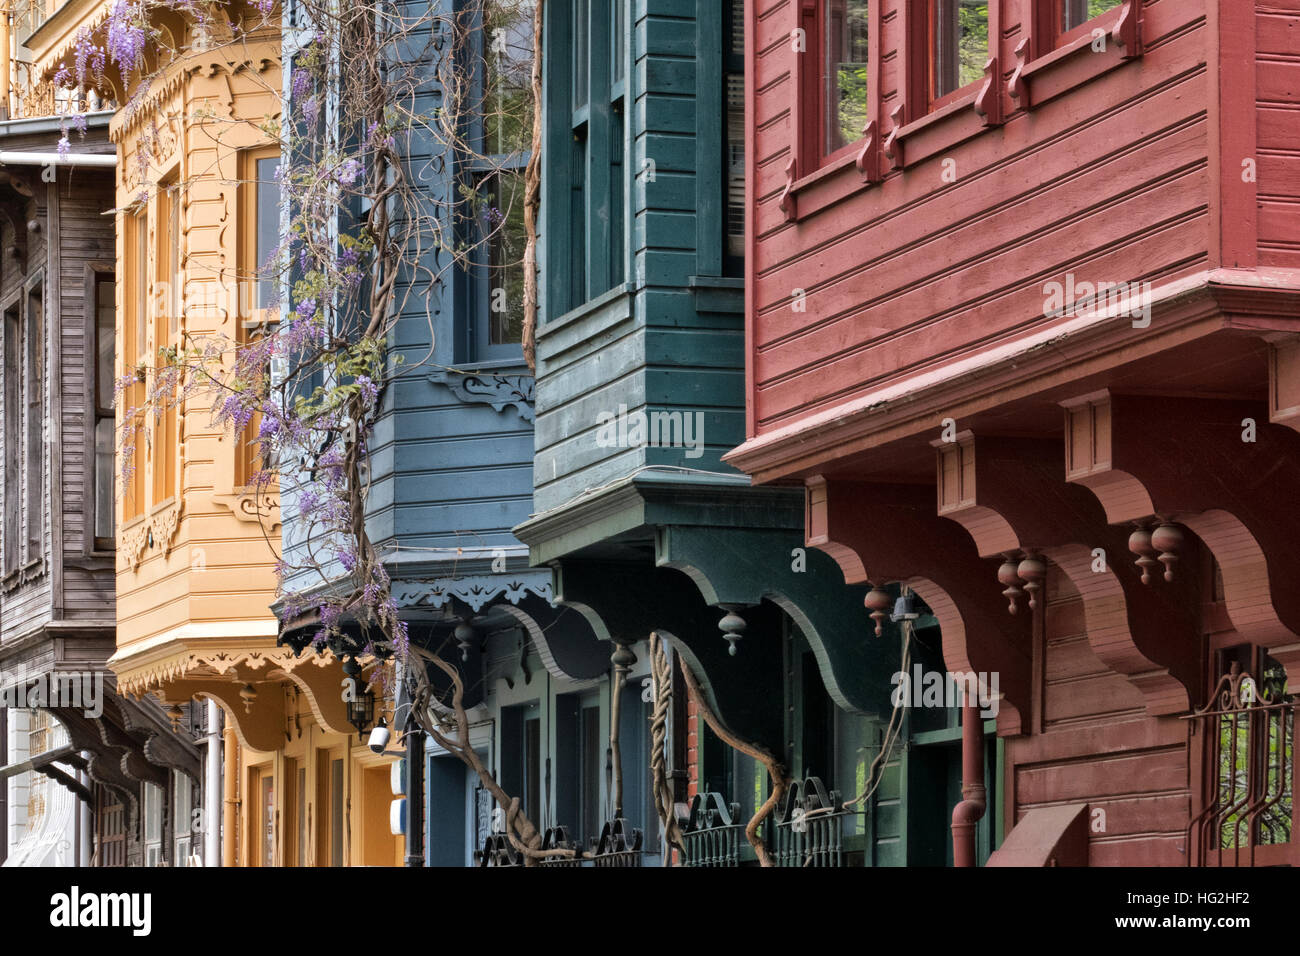 Antique wooden houses in Anadoluhisar, Istanbul Turkey - Stock Image